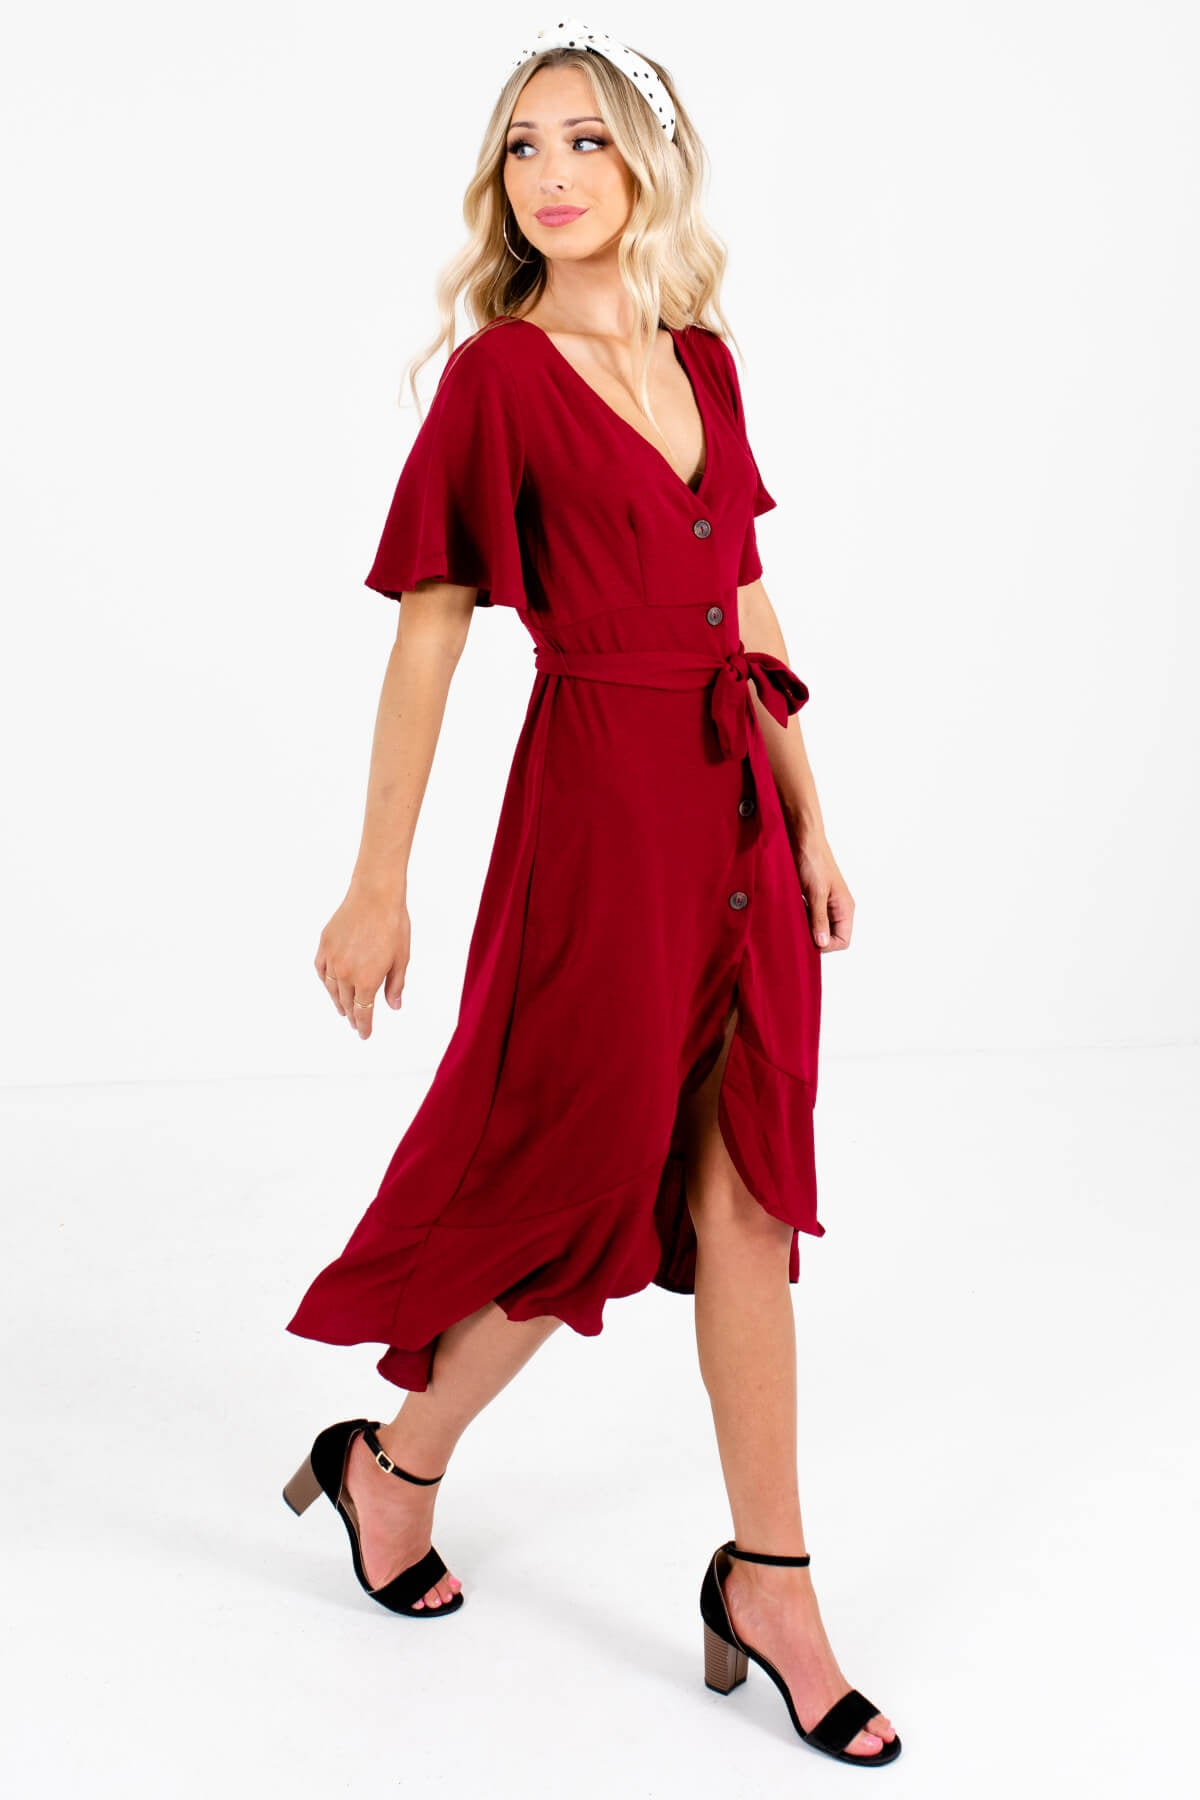 Burgundy Red Cute and Comfortable Boutique Midi Dresses for Women